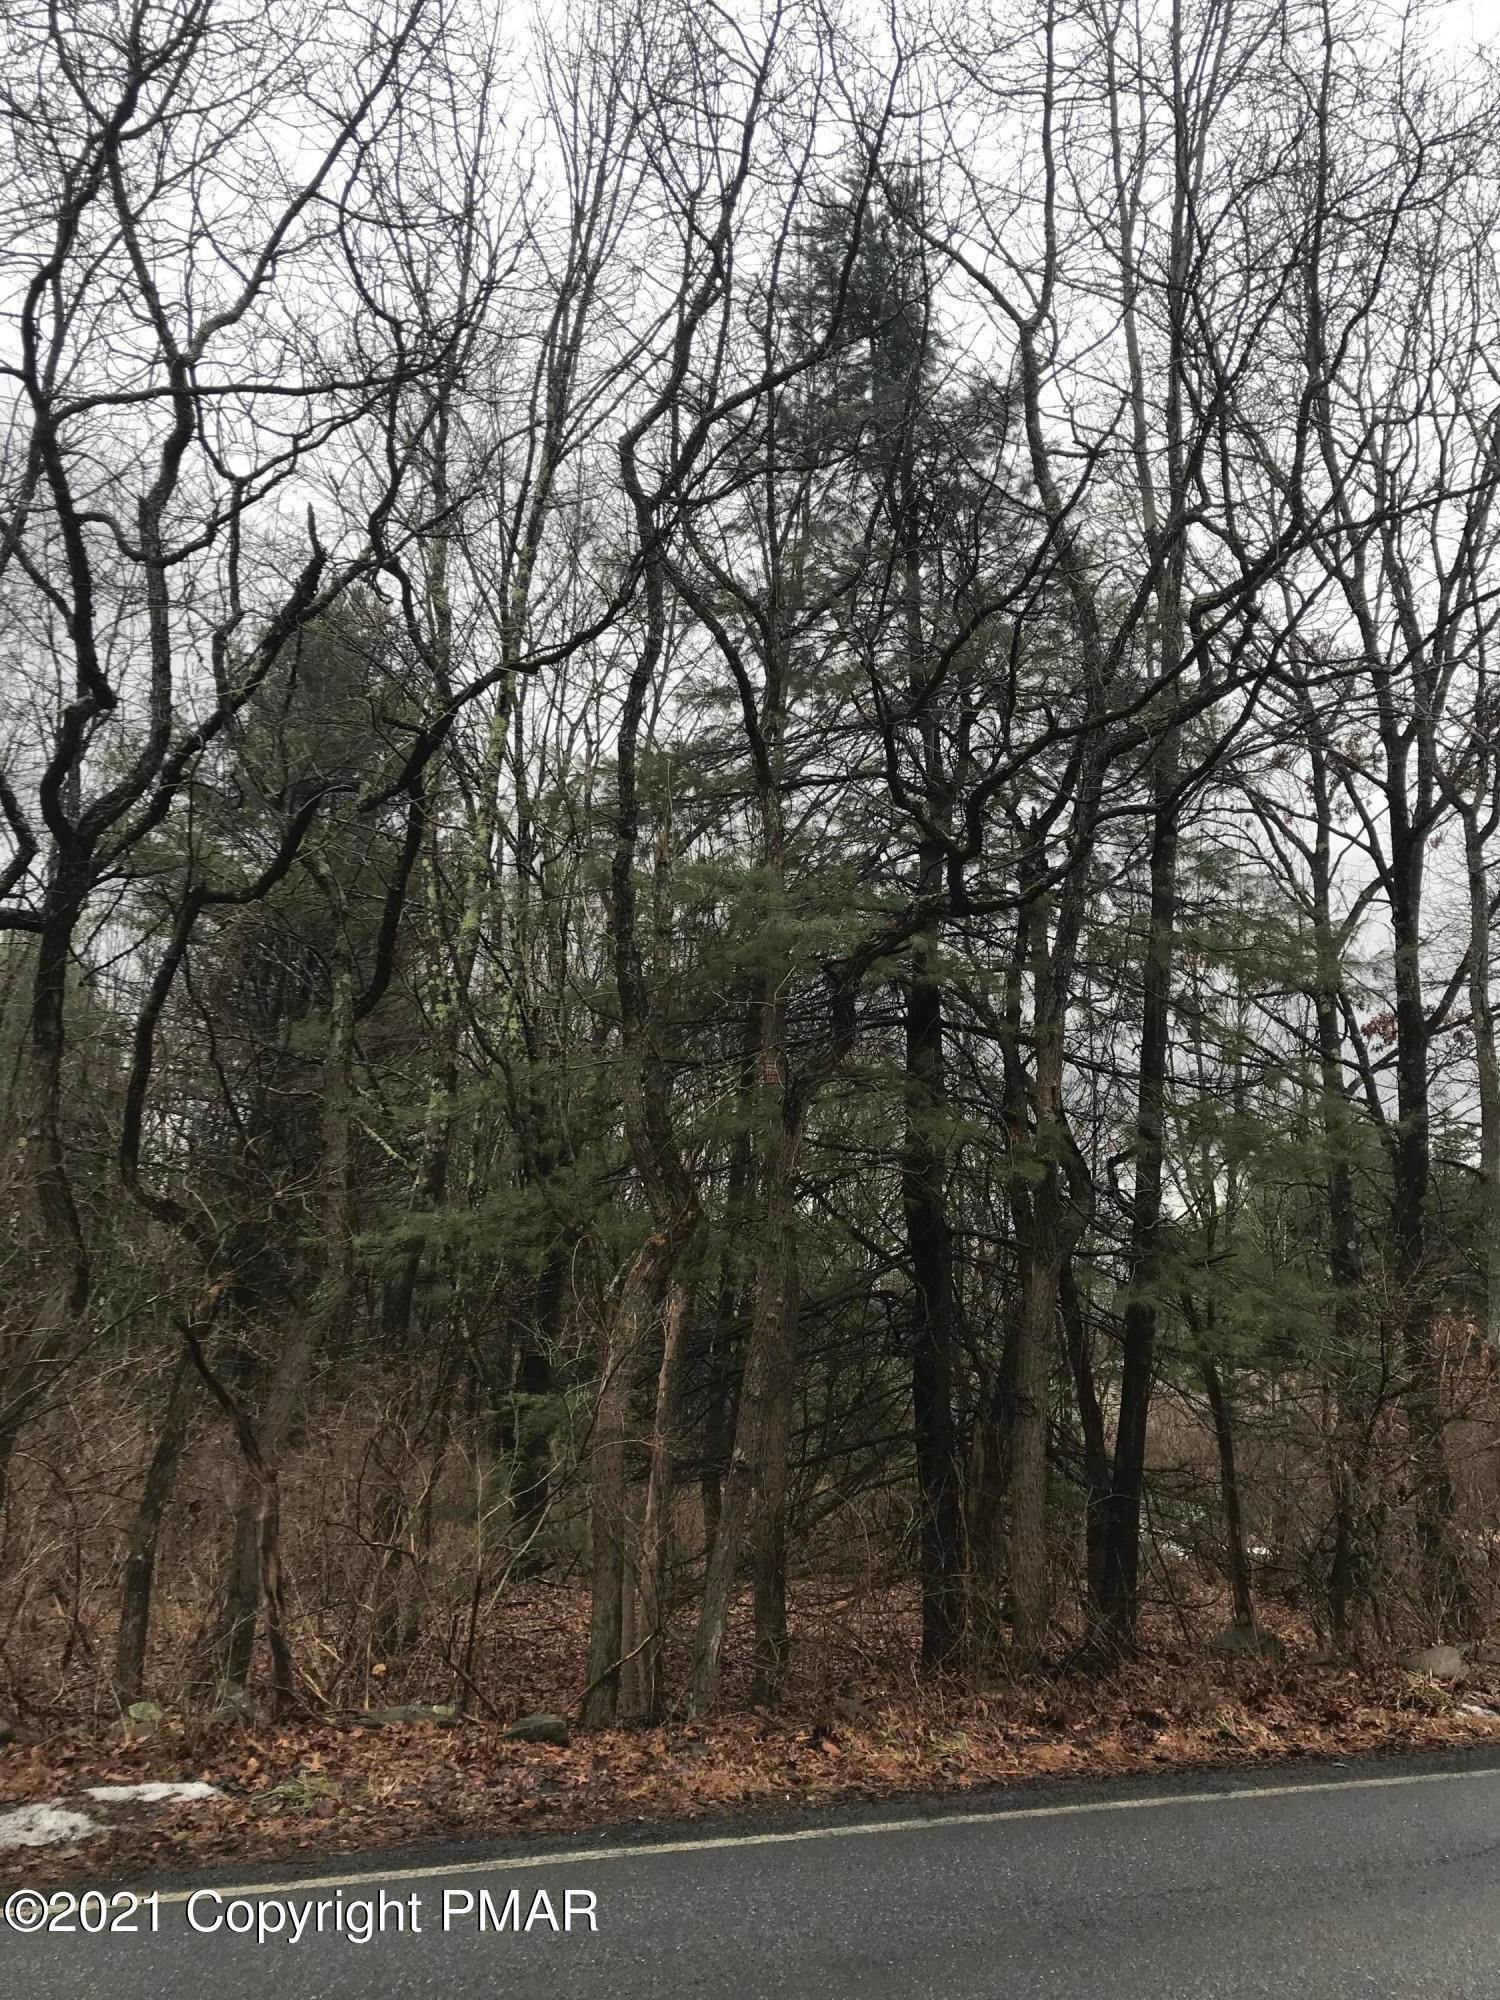 3. Land for Sale at 846 Effort Neola Rd Stroudsburg, Pennsylvania 18360 United States